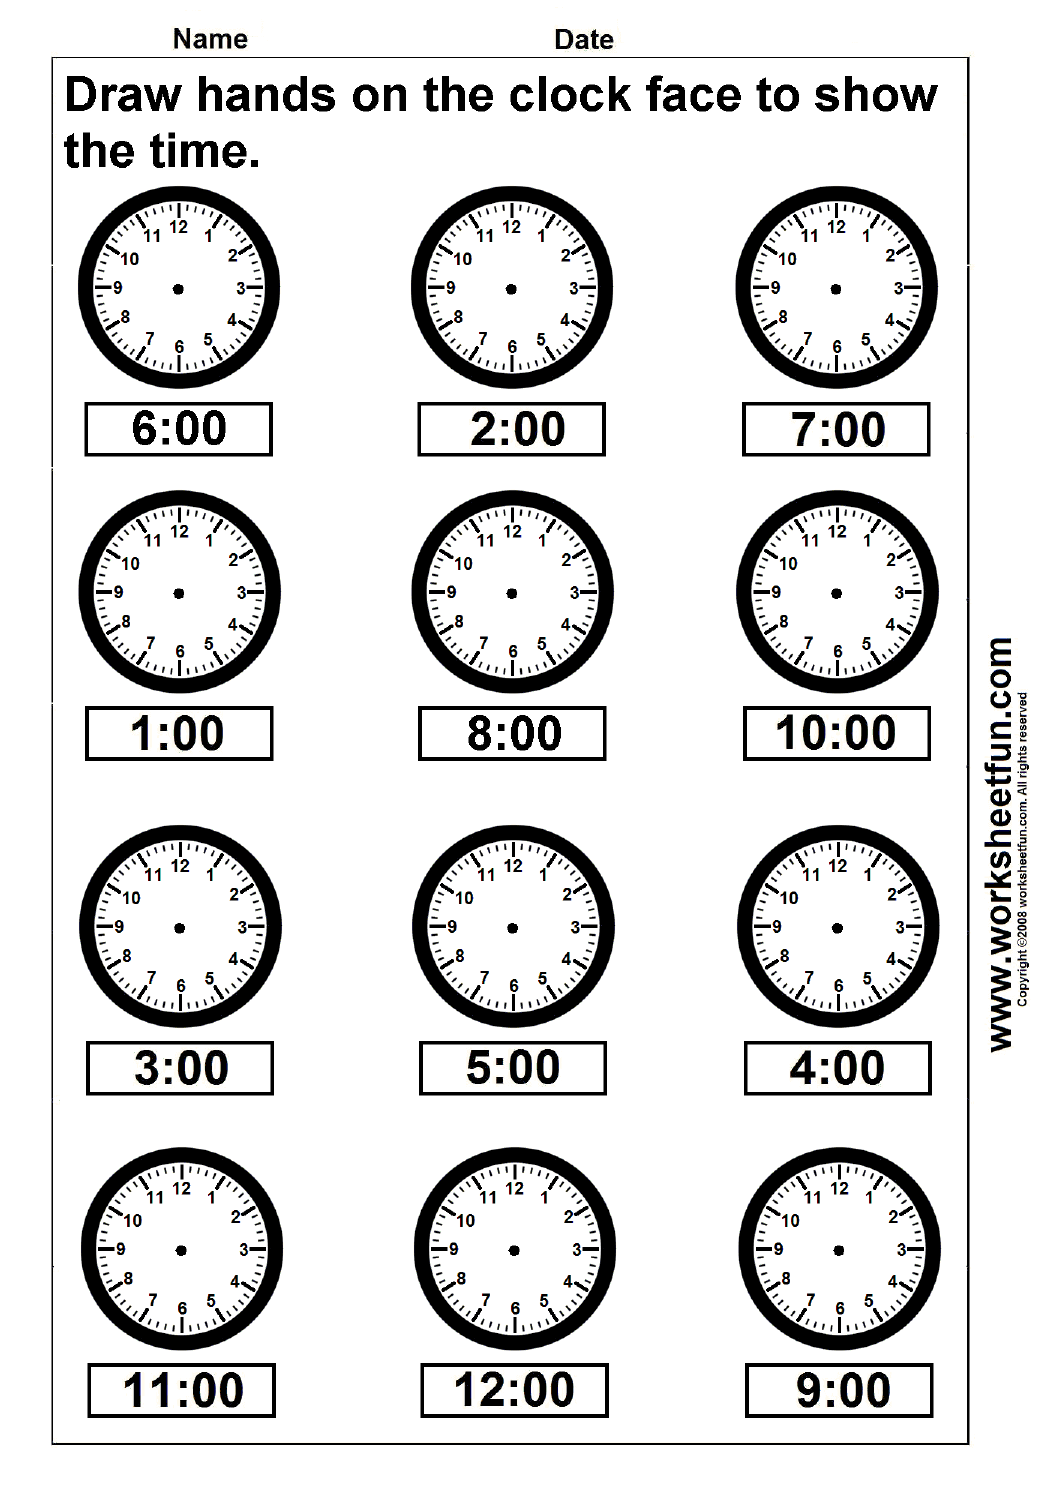 worksheet Clock Faces Worksheets draw hands on the clock face to show time 4 worksheets worksheet 1 face